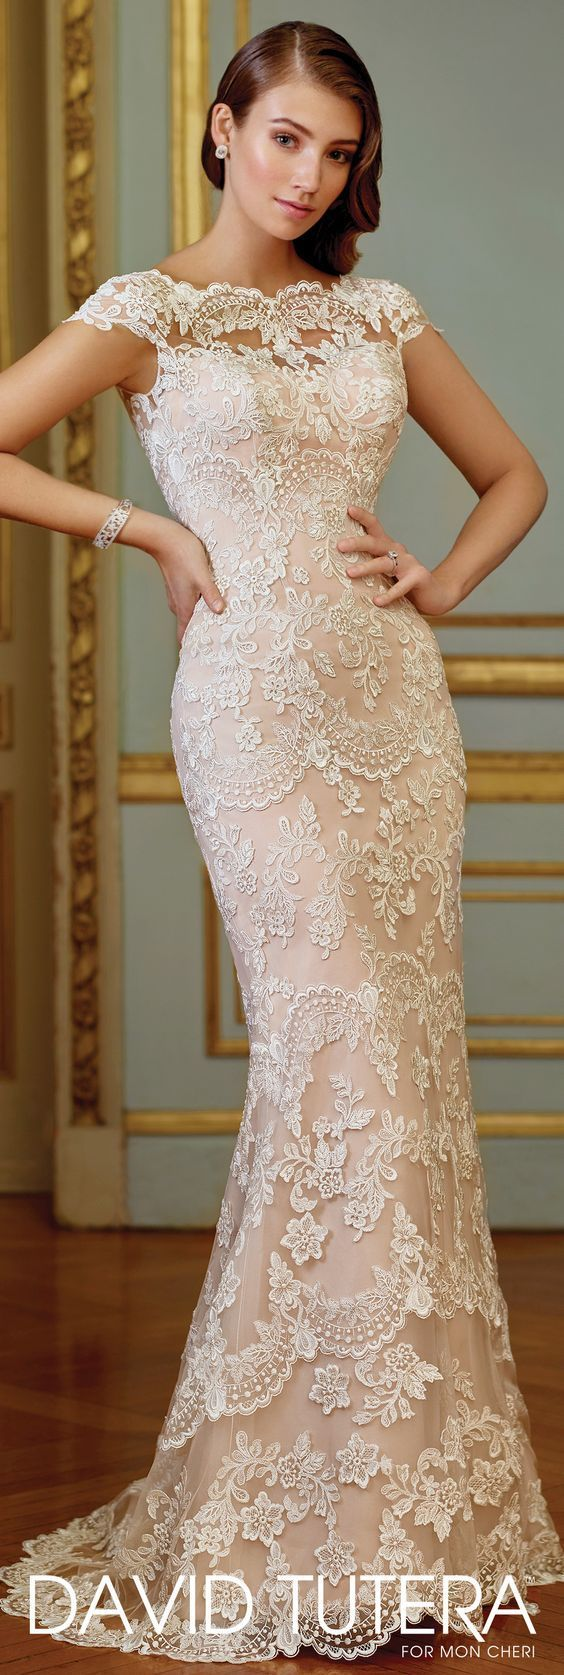 Featured Wedding Dress: David Tutera for Mon Cheri; Wedding dress idea.